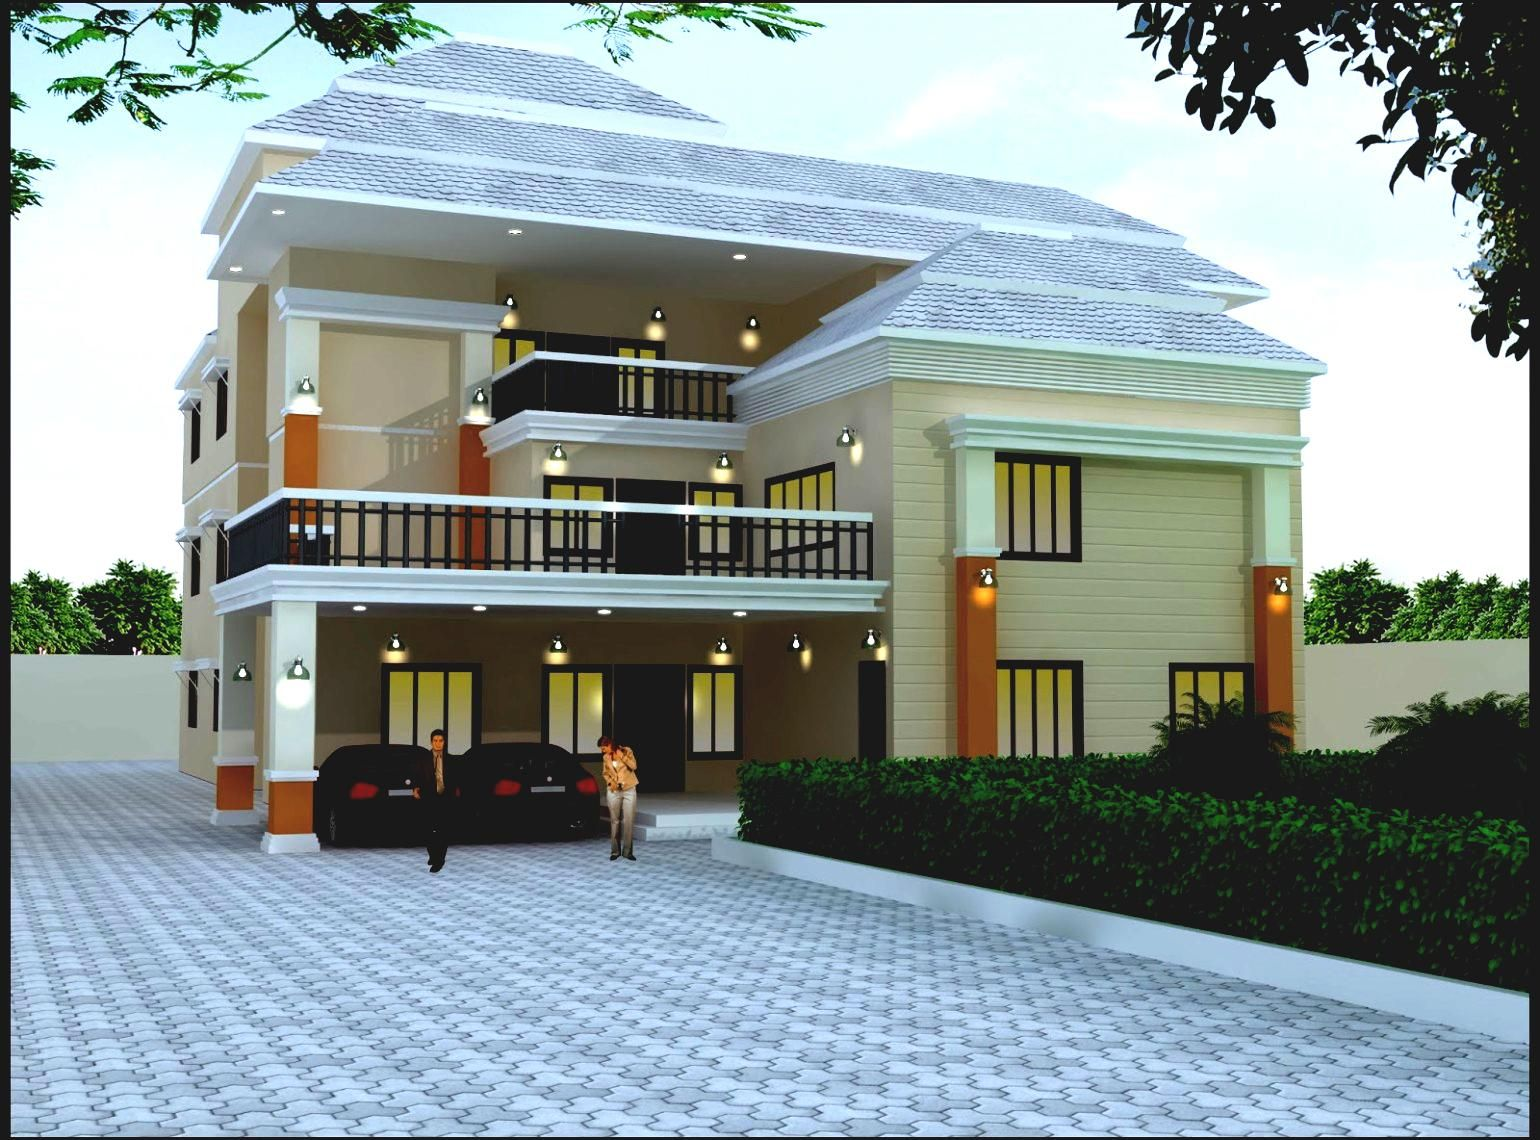 Charming N Small House Plan Design Arts Contemporary Home Designs In